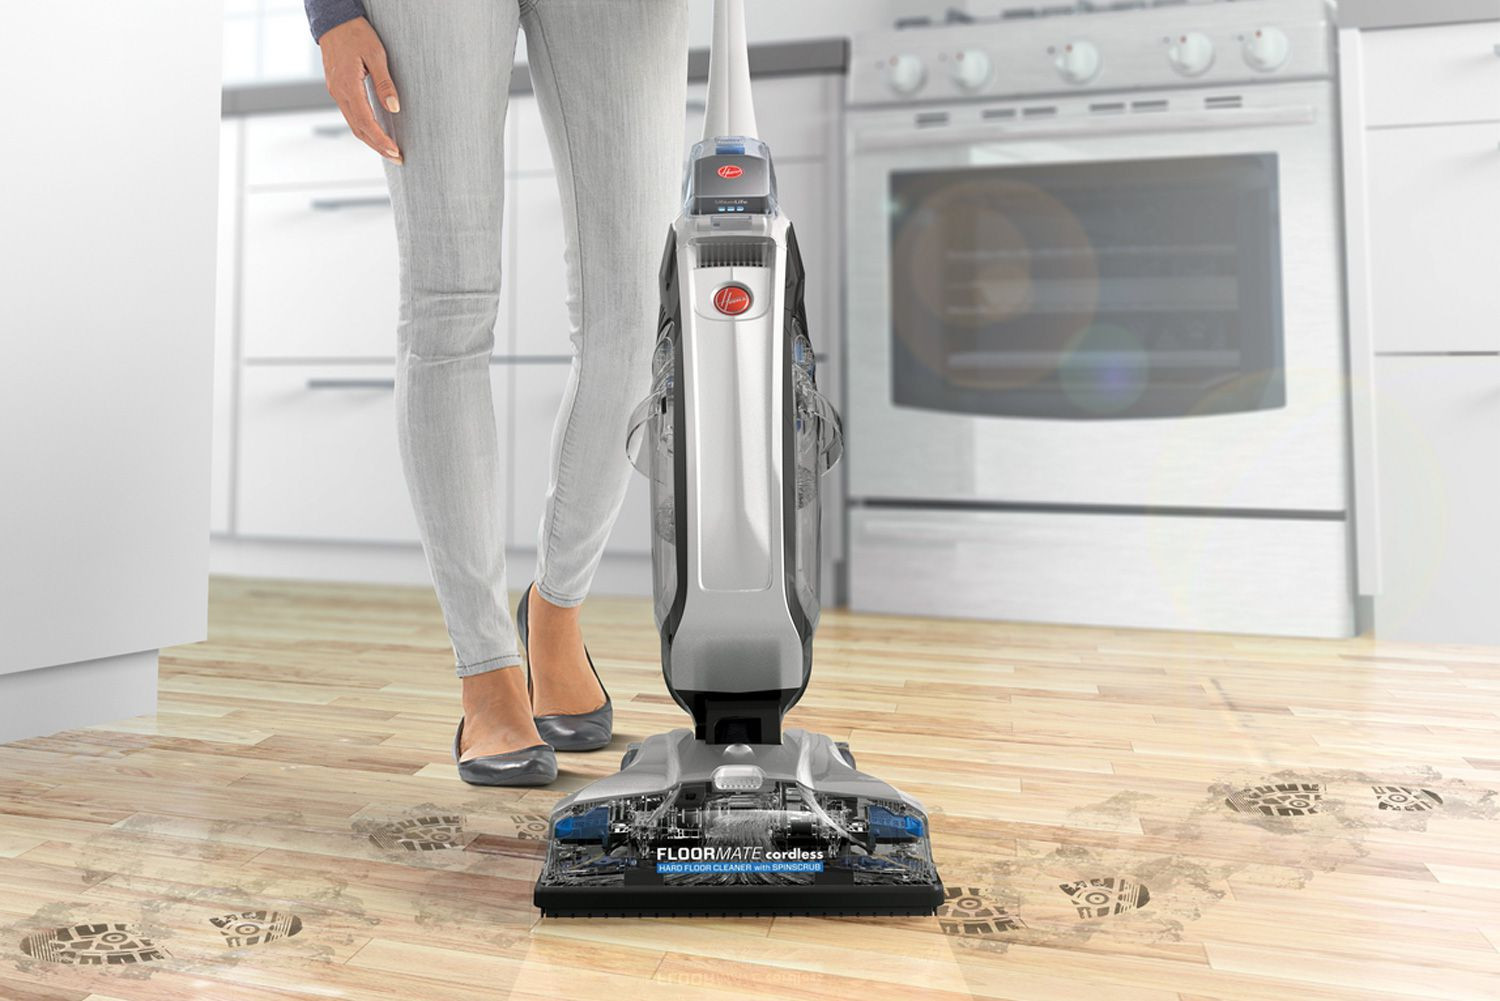 13 Lovely Hardwood Floor Steam Cleaner Reviews 2021 free download hardwood floor steam cleaner reviews of hoover floormate cleaner review throughout hoover floormate 59a452af685fbe00102f4ce0